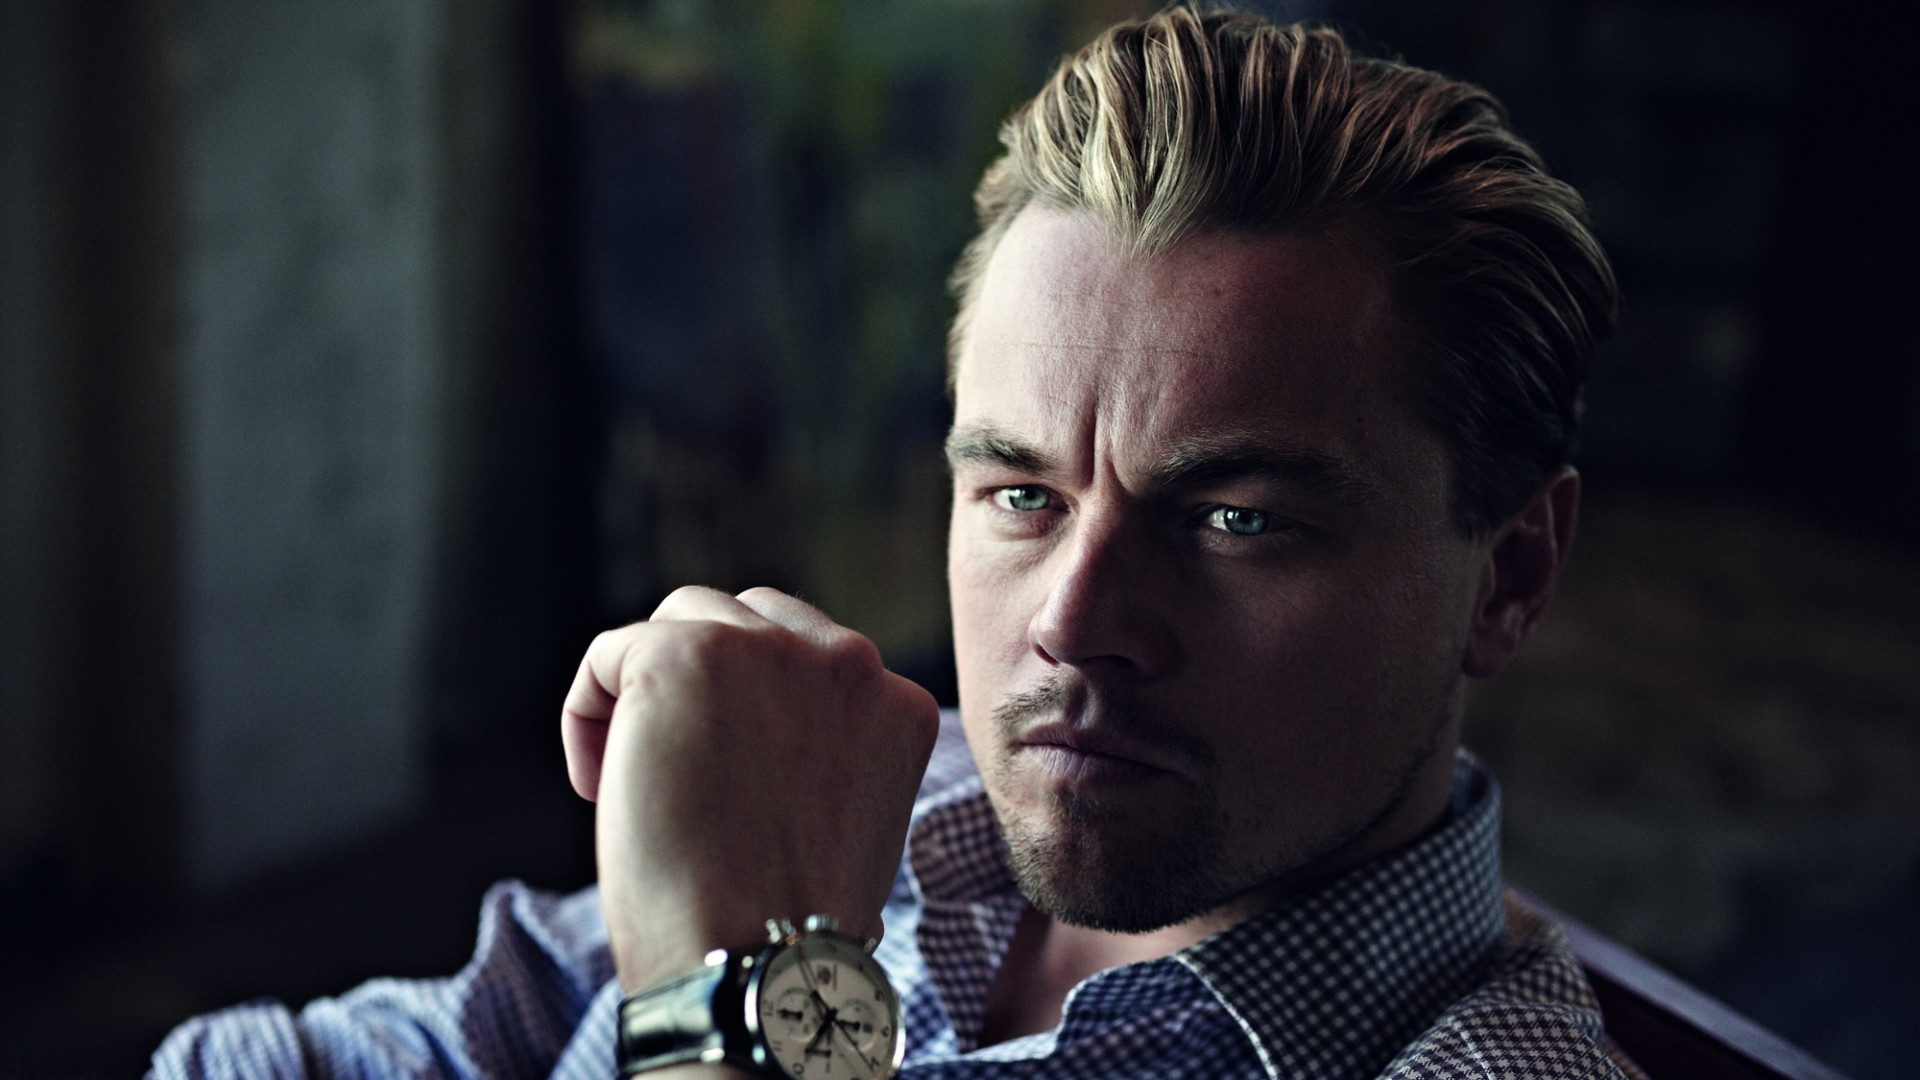 1920x1080 Preview wallpaper leonardo dicaprio, actor, man, watch, bristles